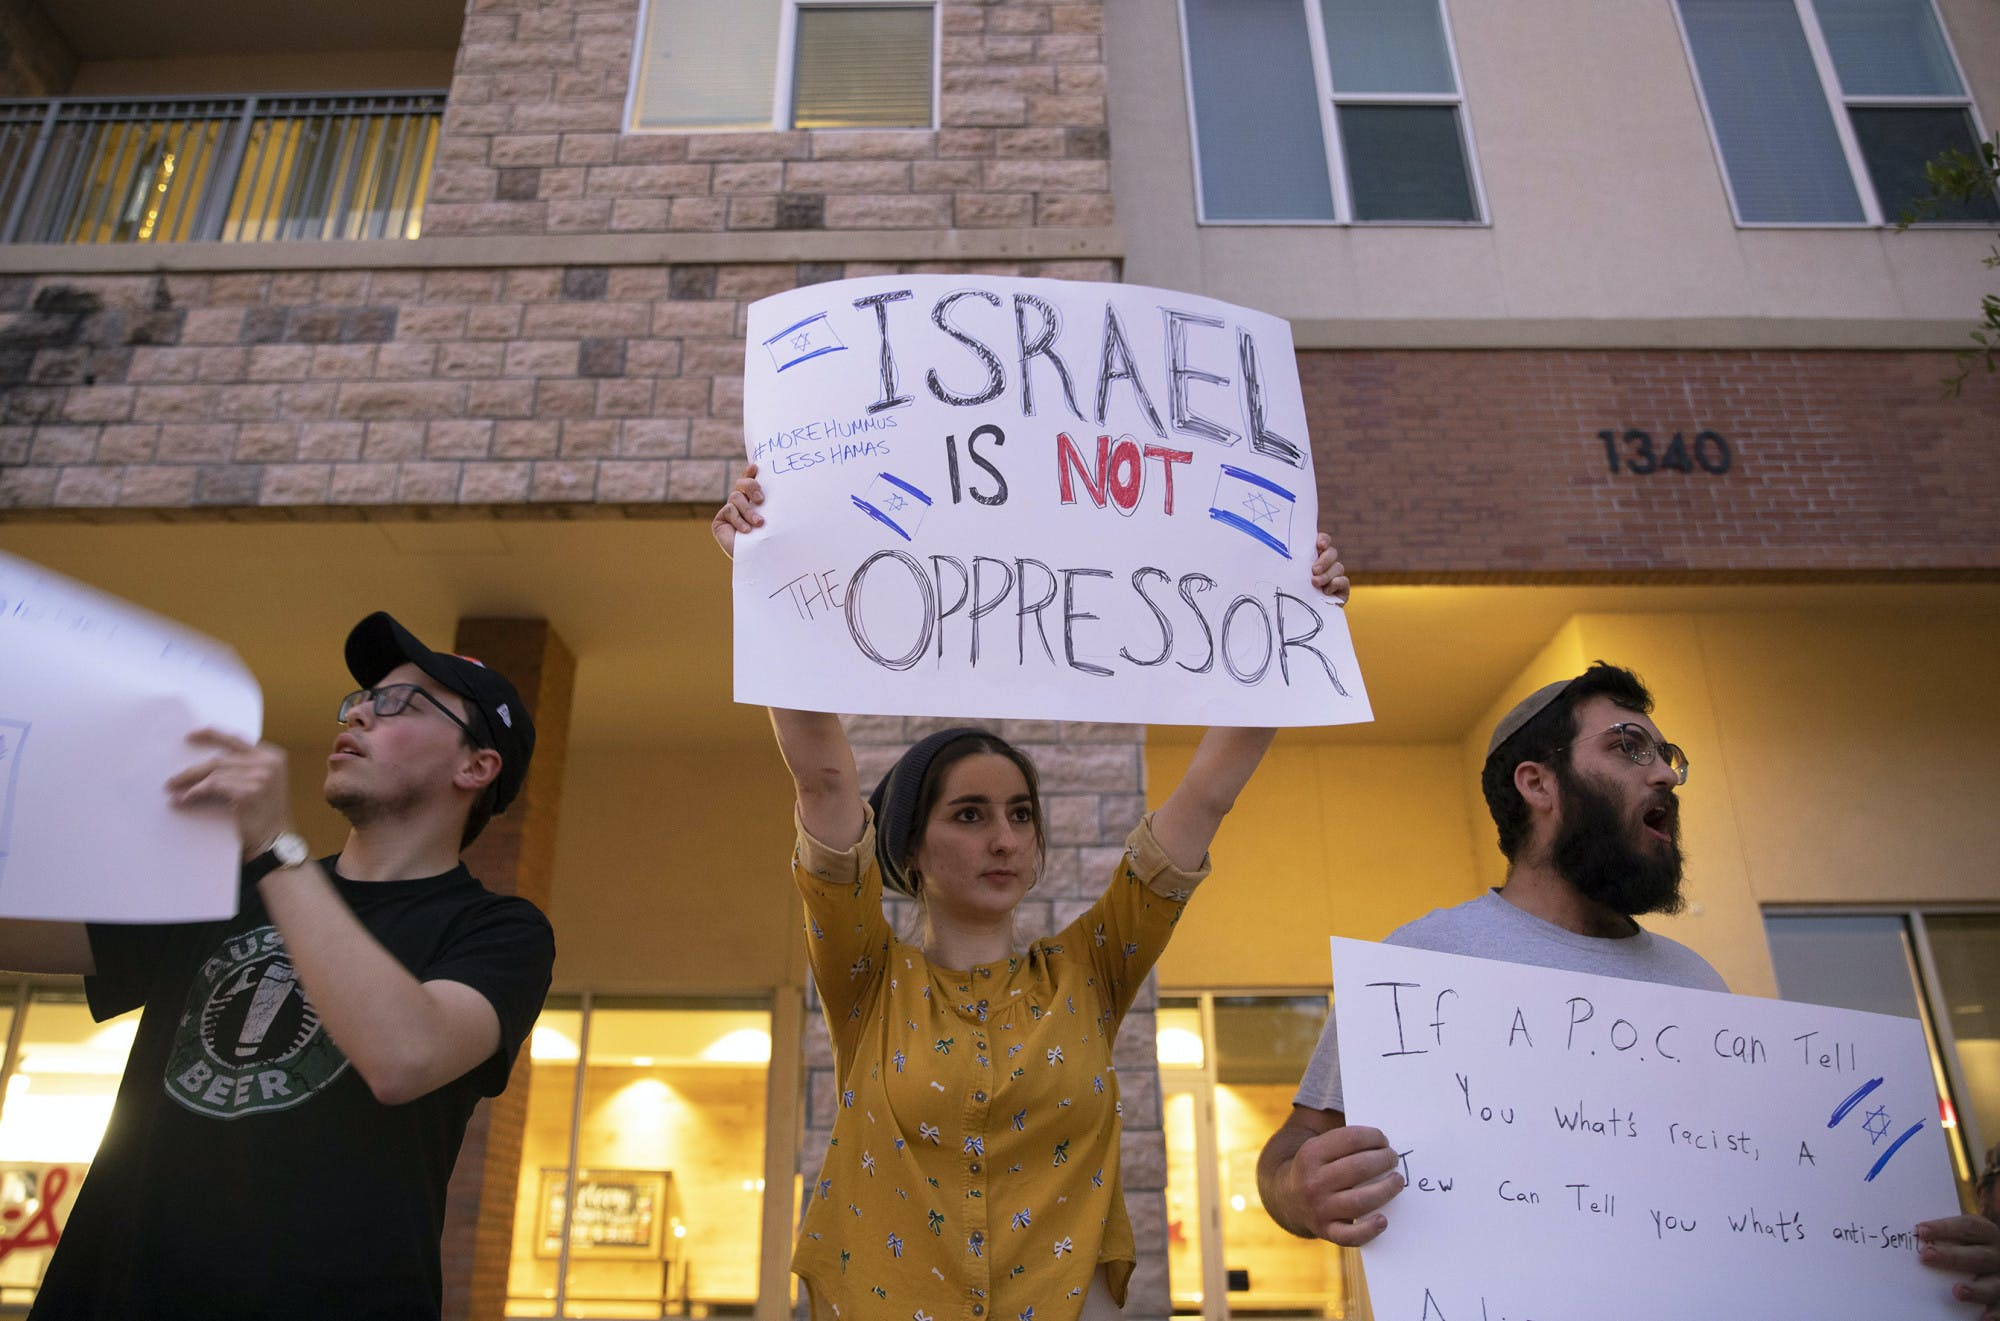 Solidarity with Palestine Counter-Protest